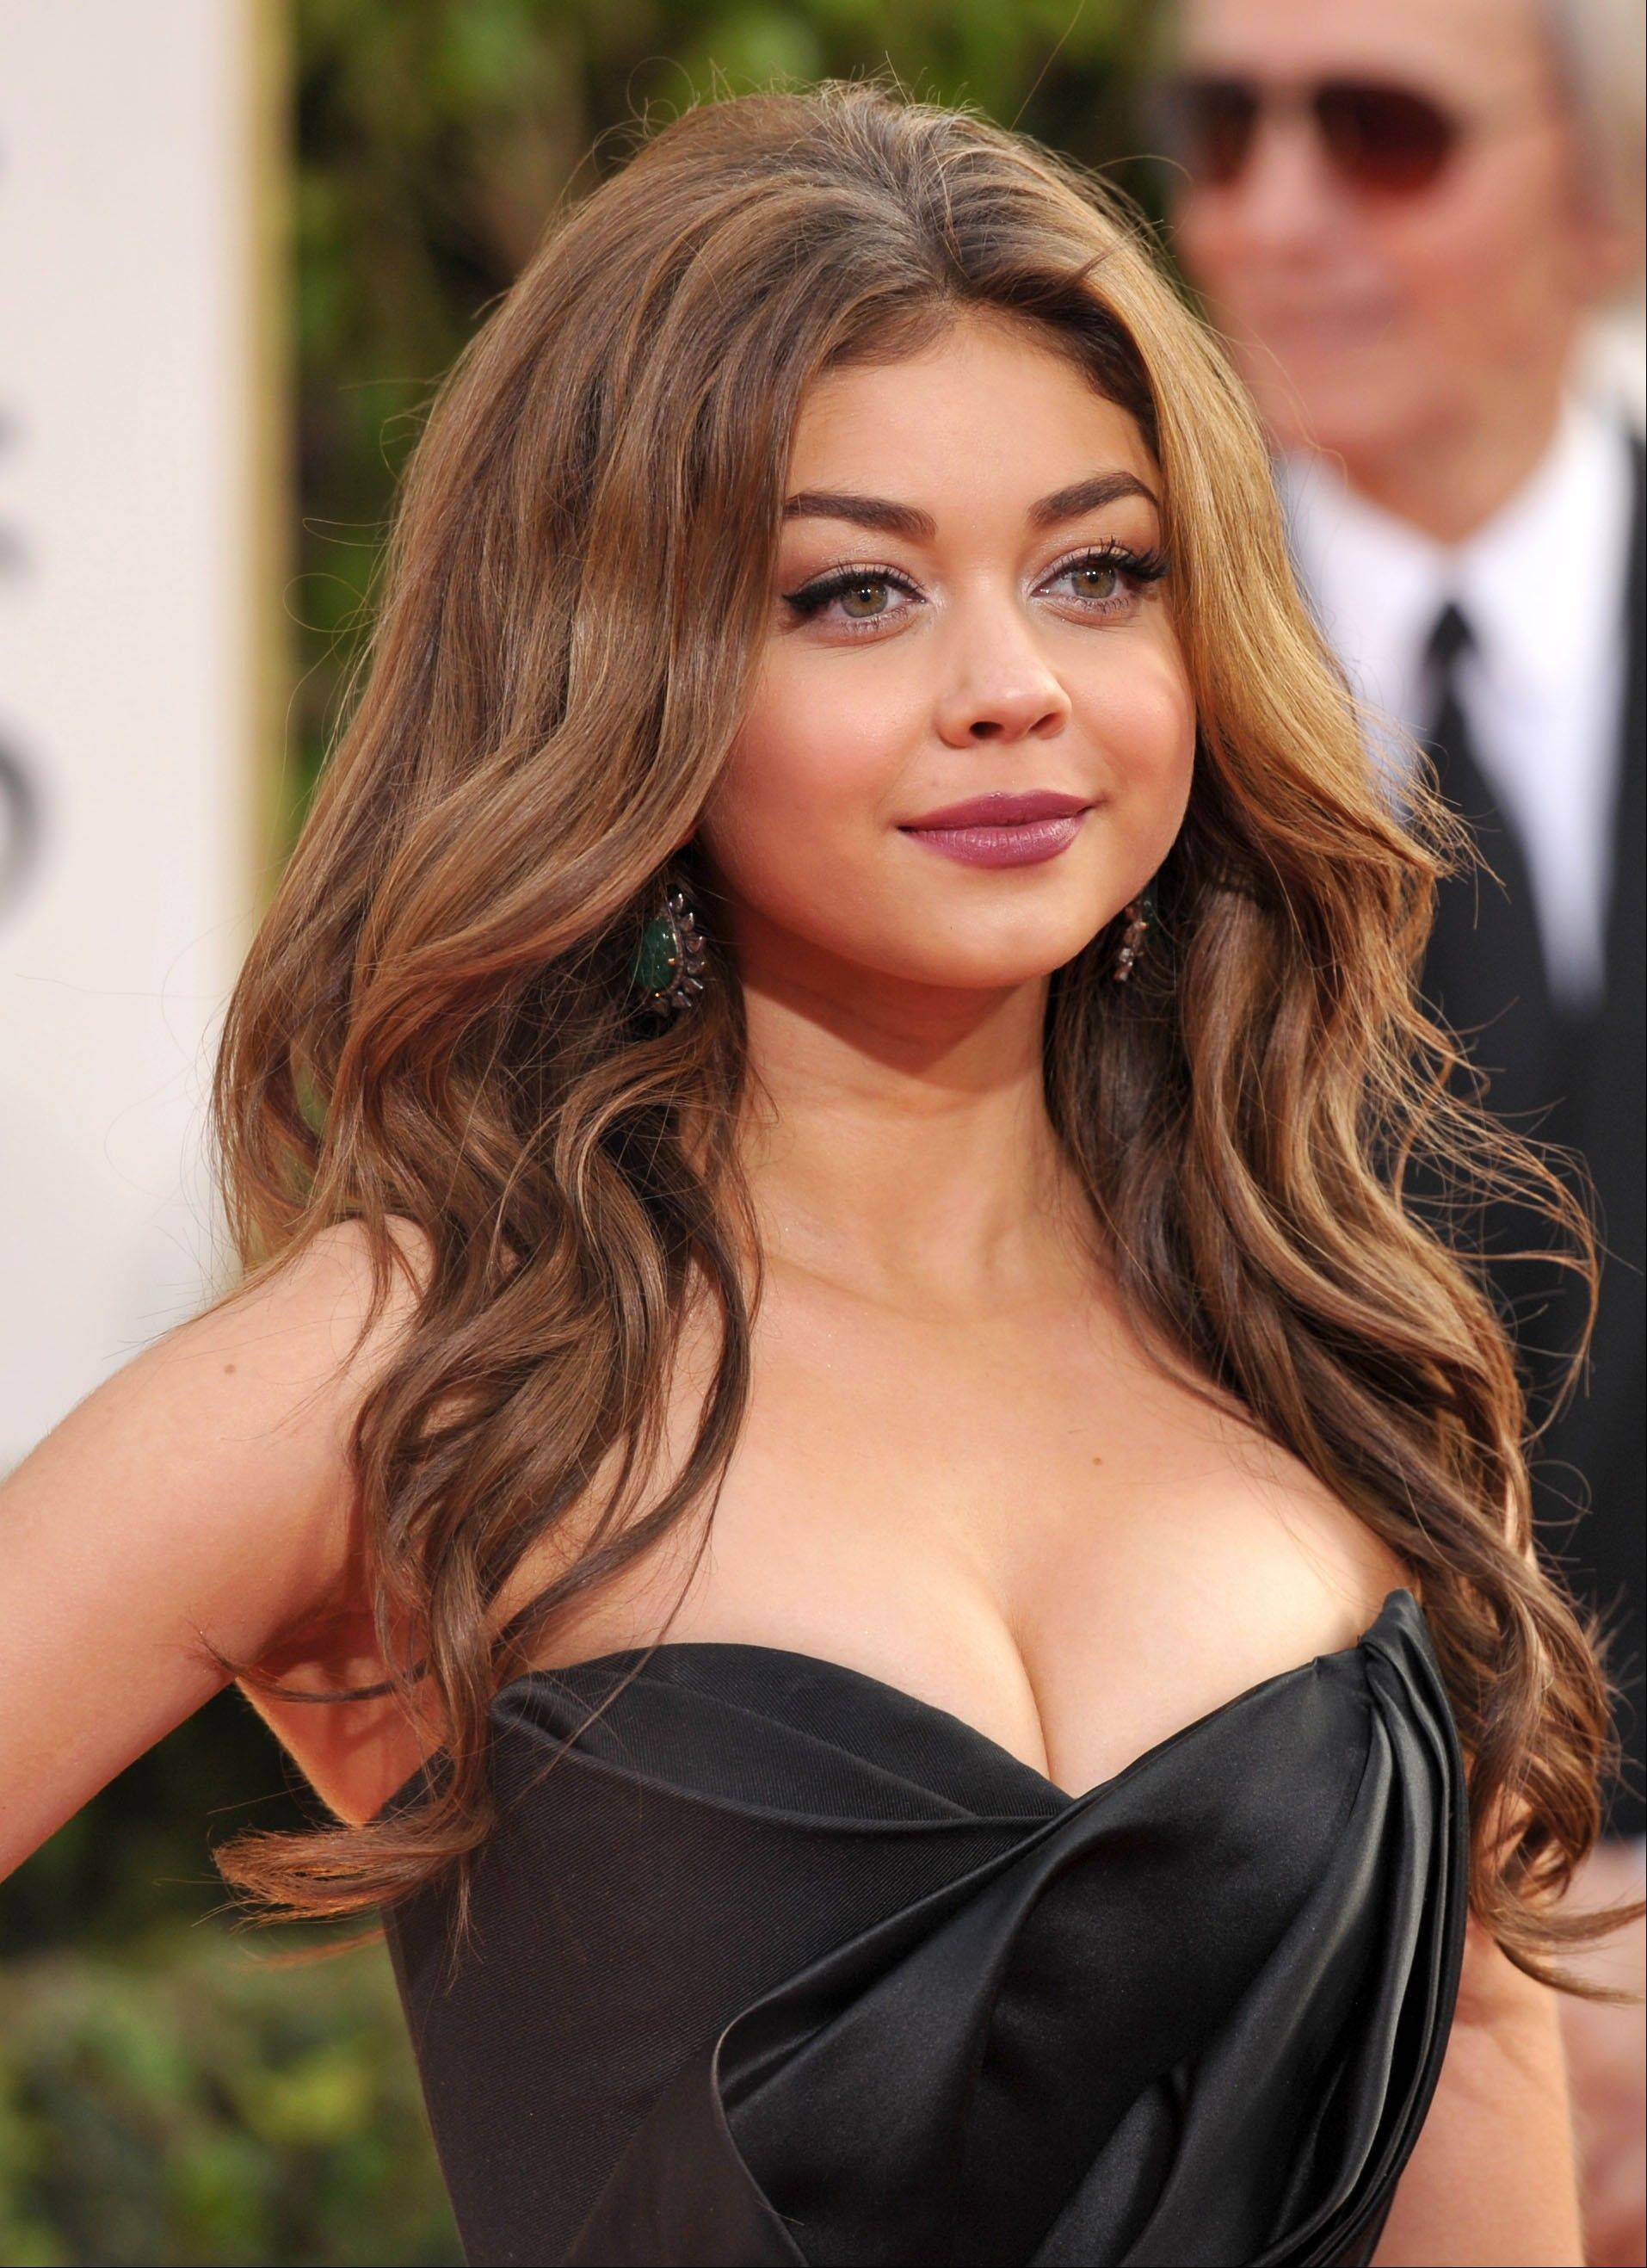 Actress Sarah Hyland, 22, is a swimsuit model for OP.